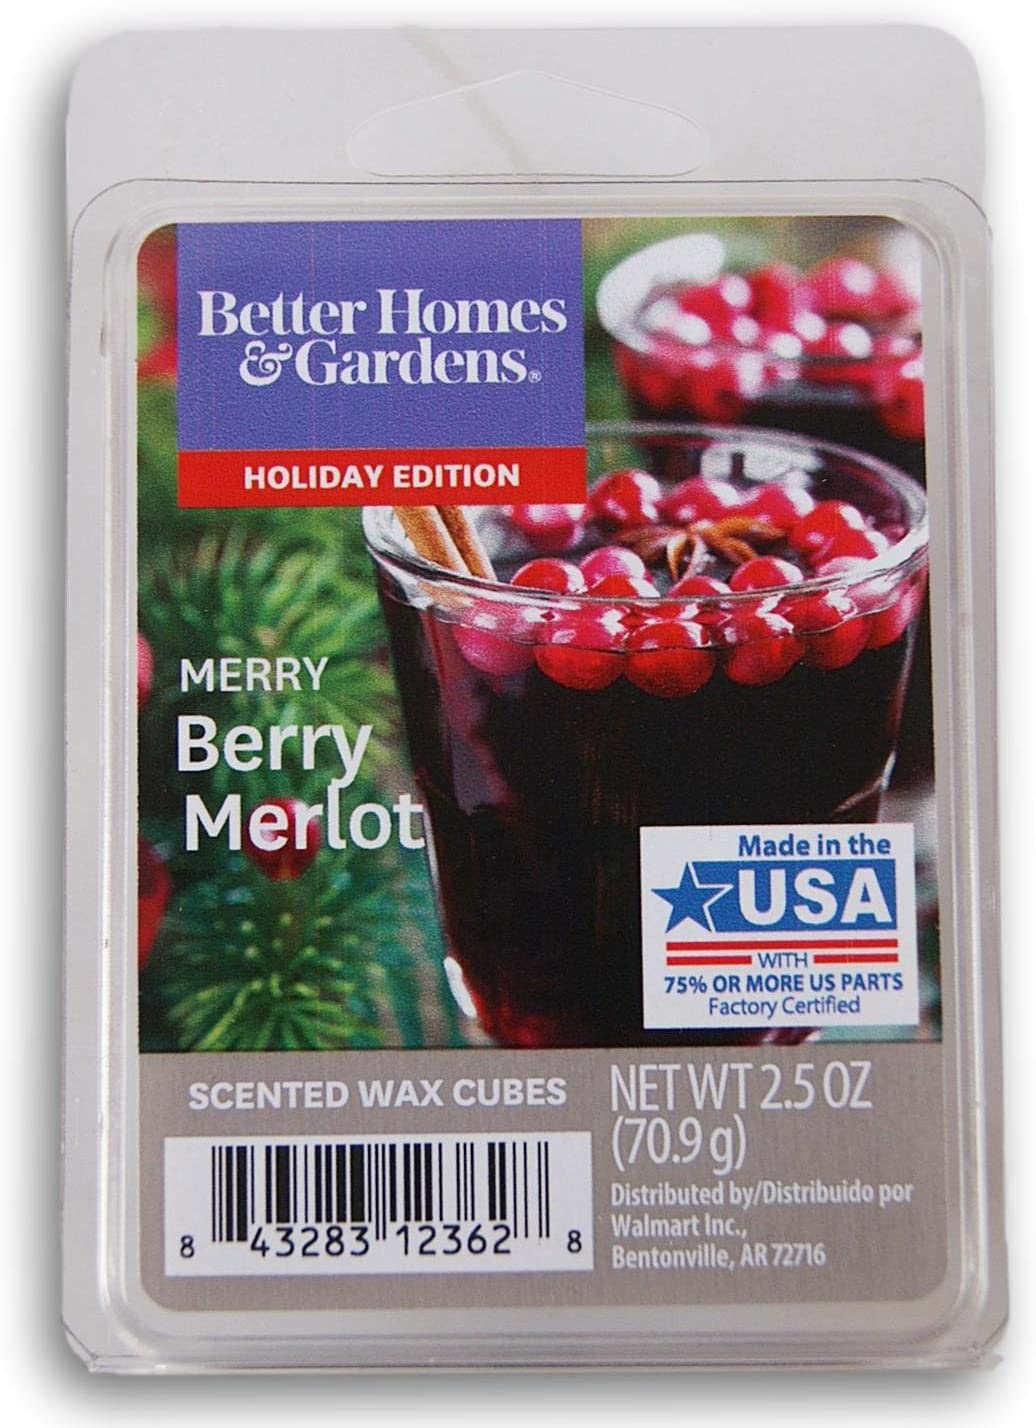 Better Homes and Gardens Scented Wax Cubes 2020 Editions - Merry Berry Merlot - 2.5 Oz